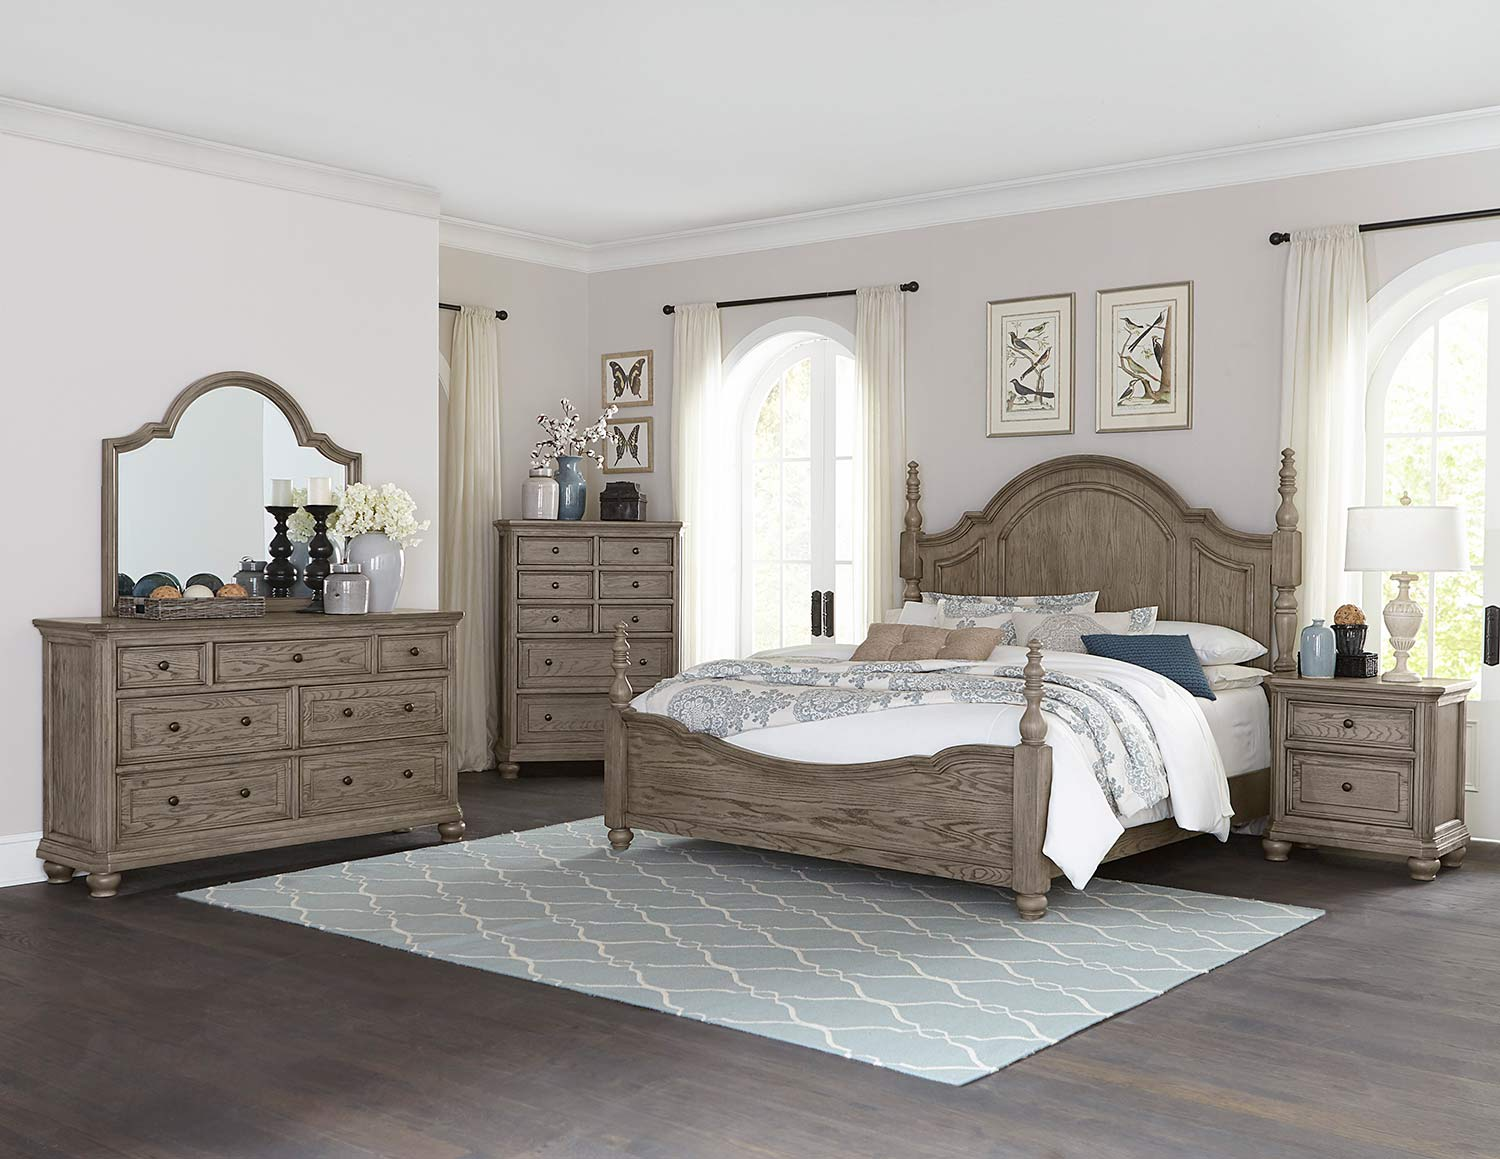 Homelegance Lavonia Poster Bedrom Set - Wire-Brushed